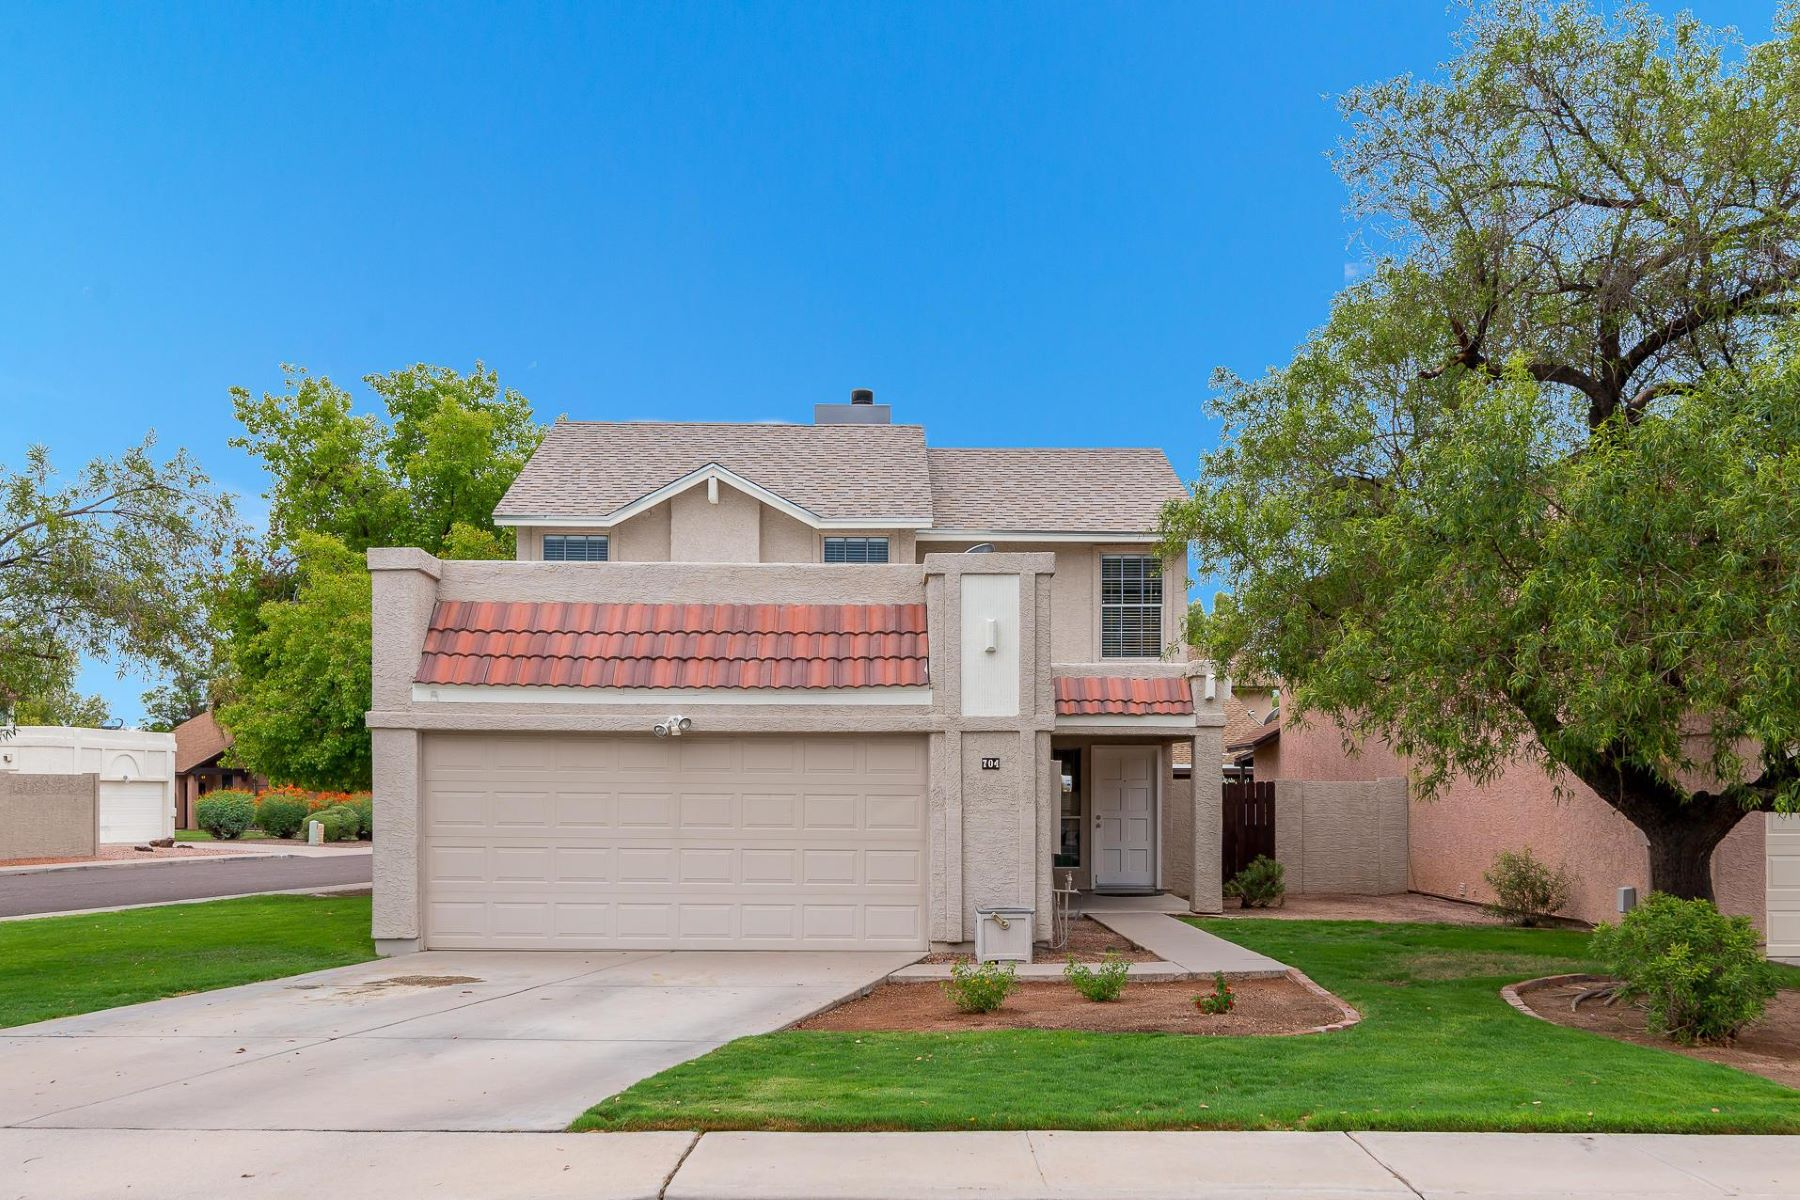 Single Family Home for Sale at Lovely home situated in highly sought-after Copperfield Estates 704 N Country Club Way Chandler, Arizona 85226 United States